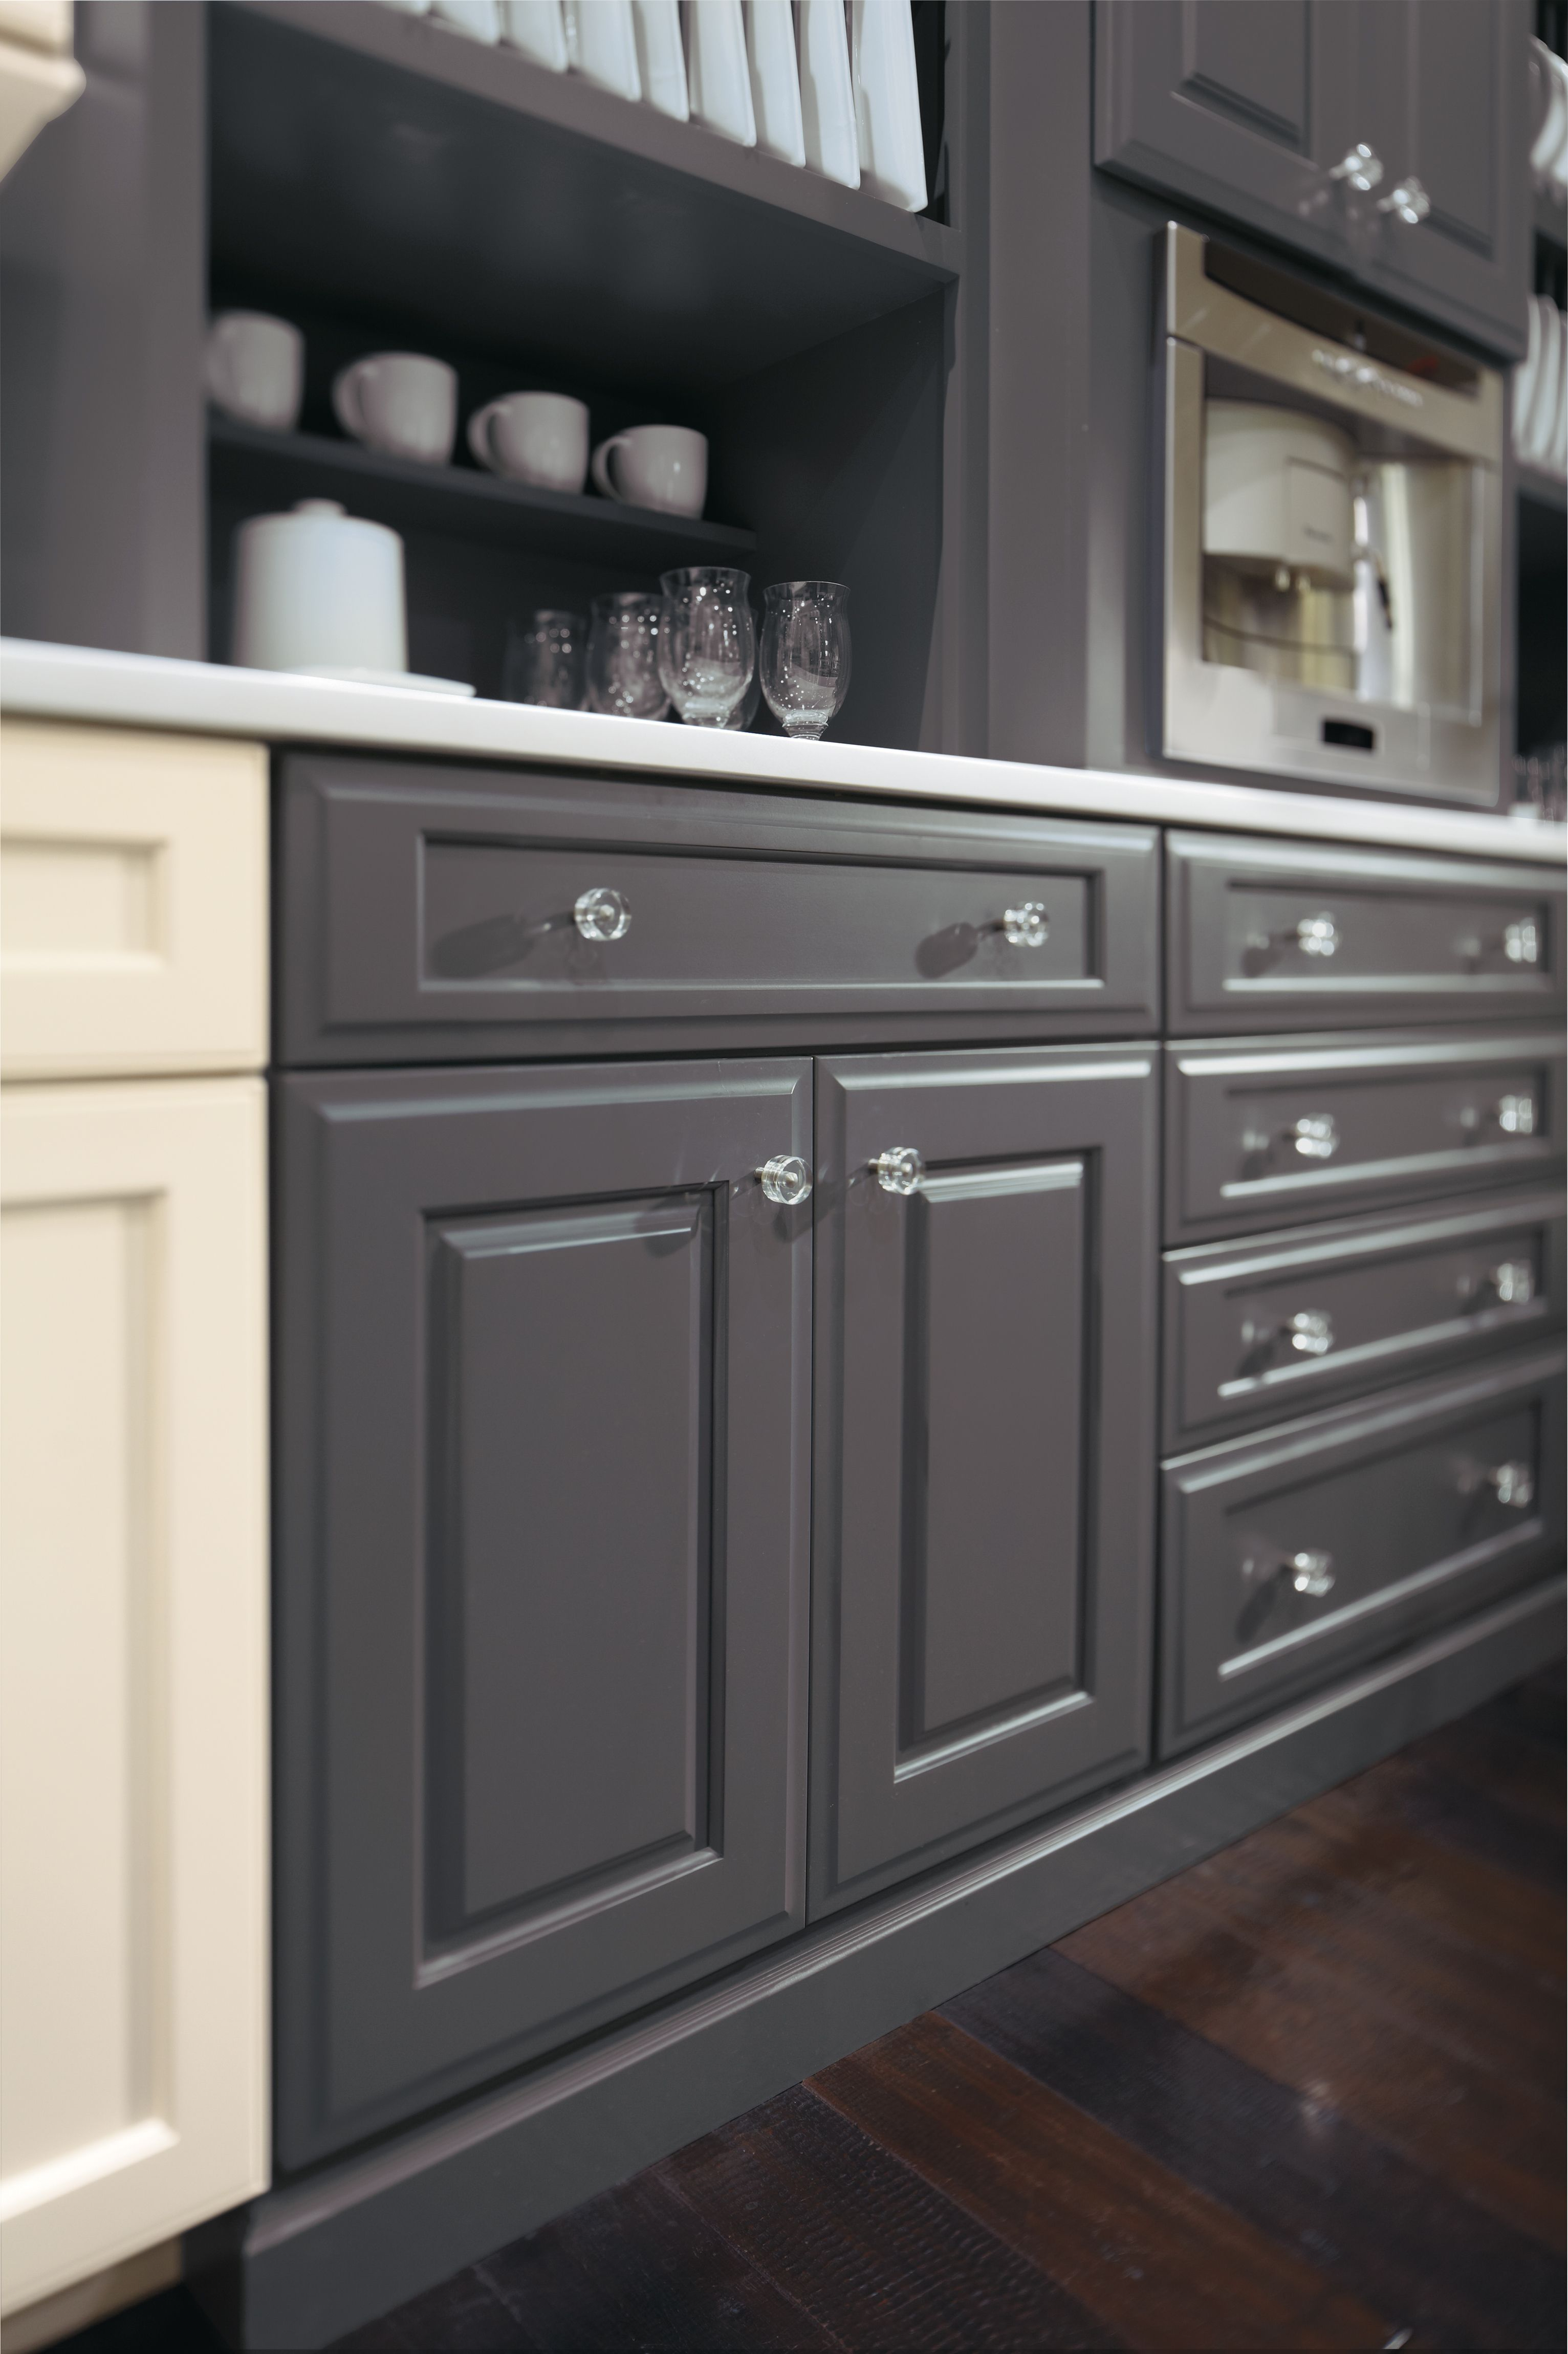 Best Match Your Cabinet Color To Just About Anything Your Heart 400 x 300